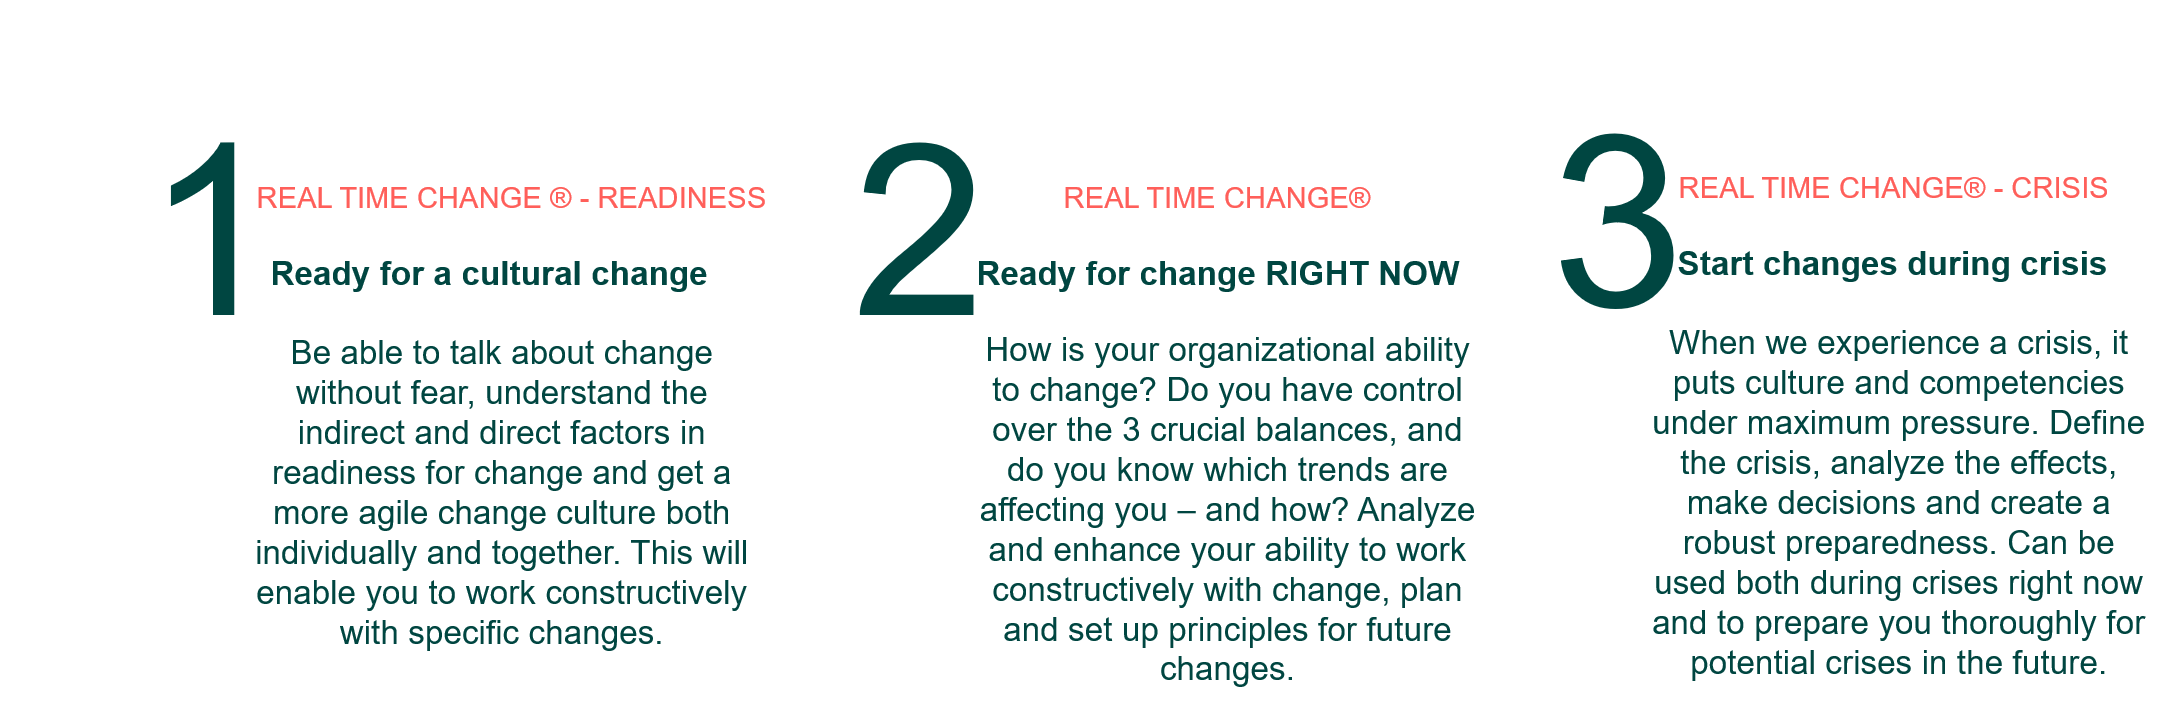 Change management - Model - The three concepts